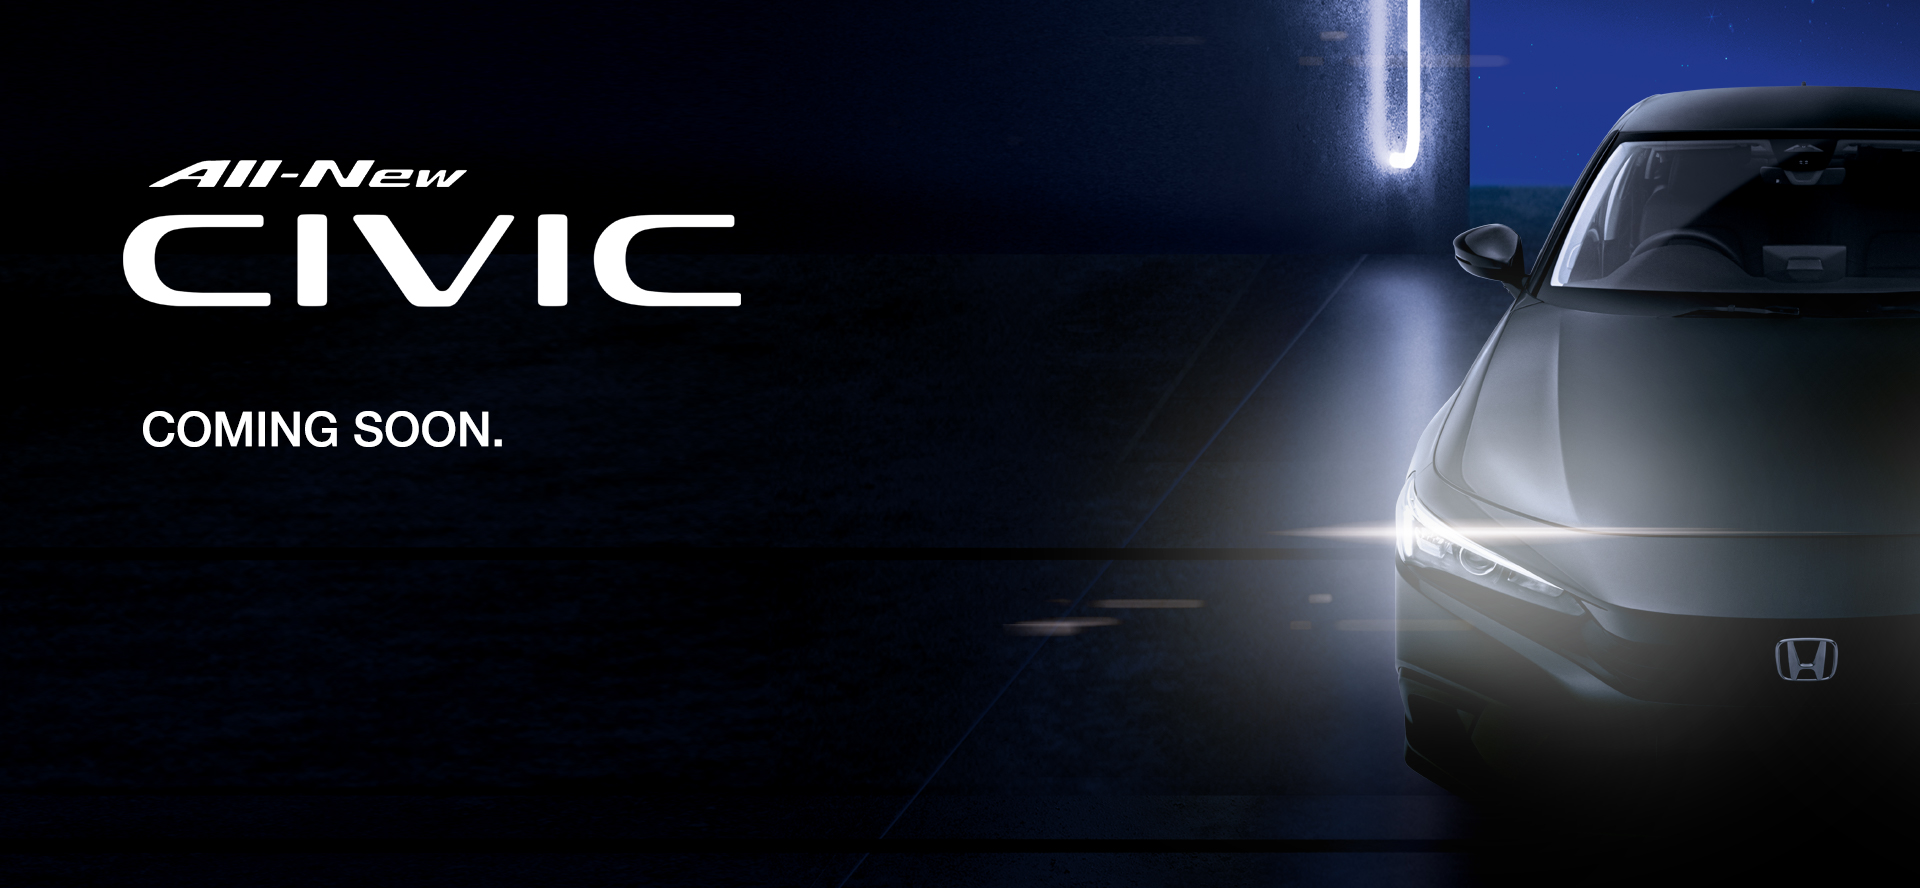 All-New_Civic_Model_Page_Banner_-_1920x888px_v2 Honda All-New Civic